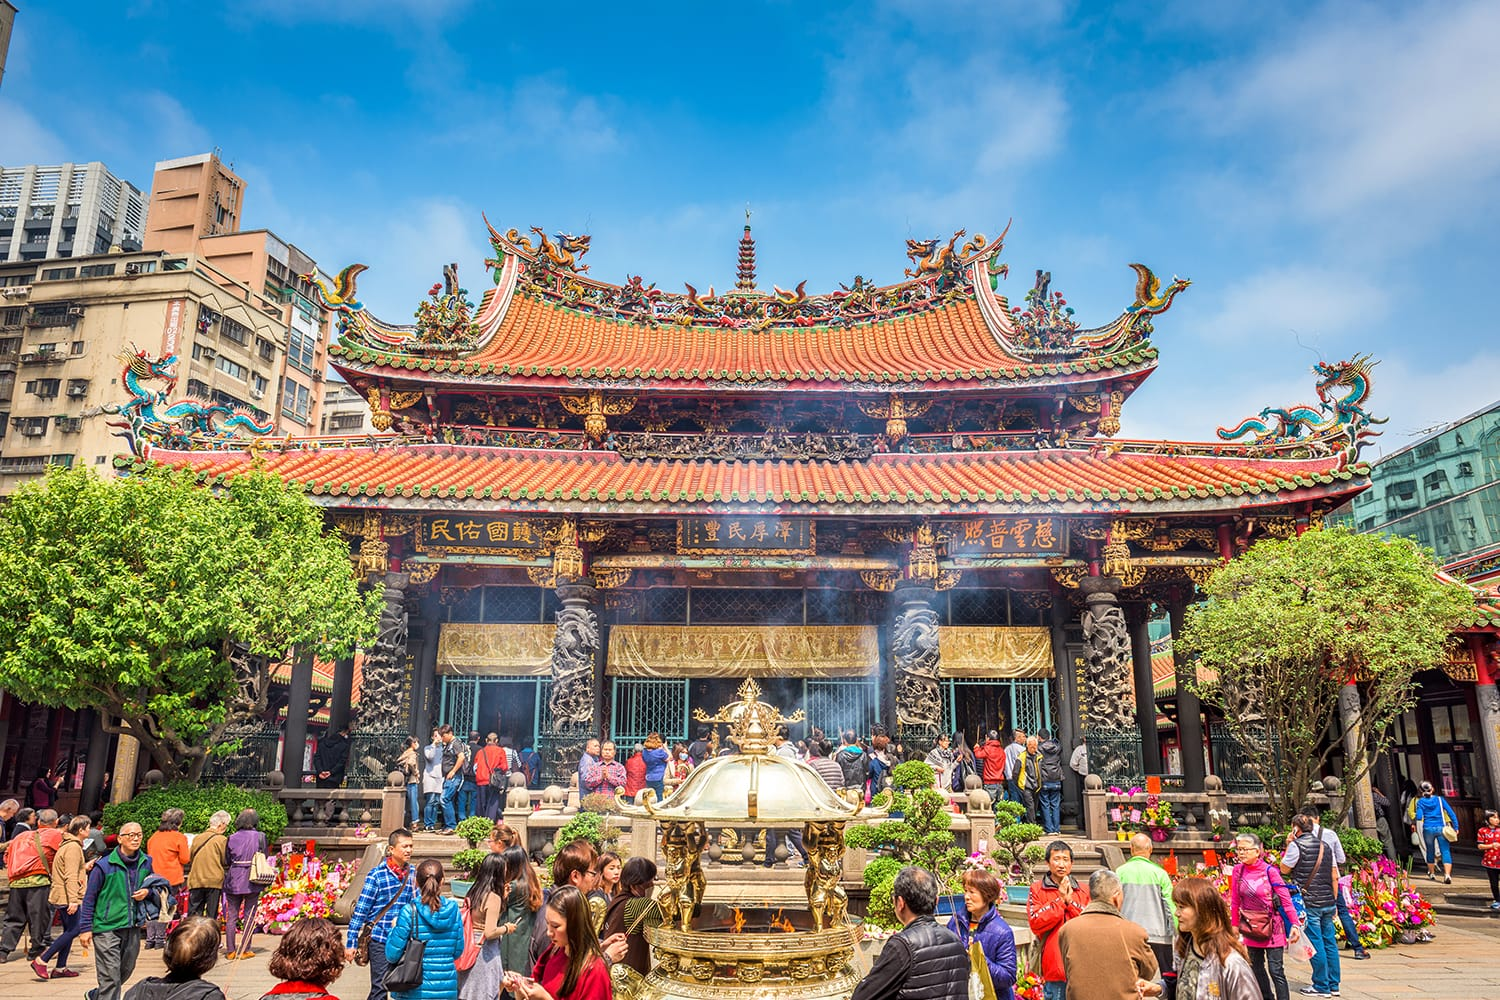 Crowds at Lungshan Temple of Manka in Taipei, Taiwan